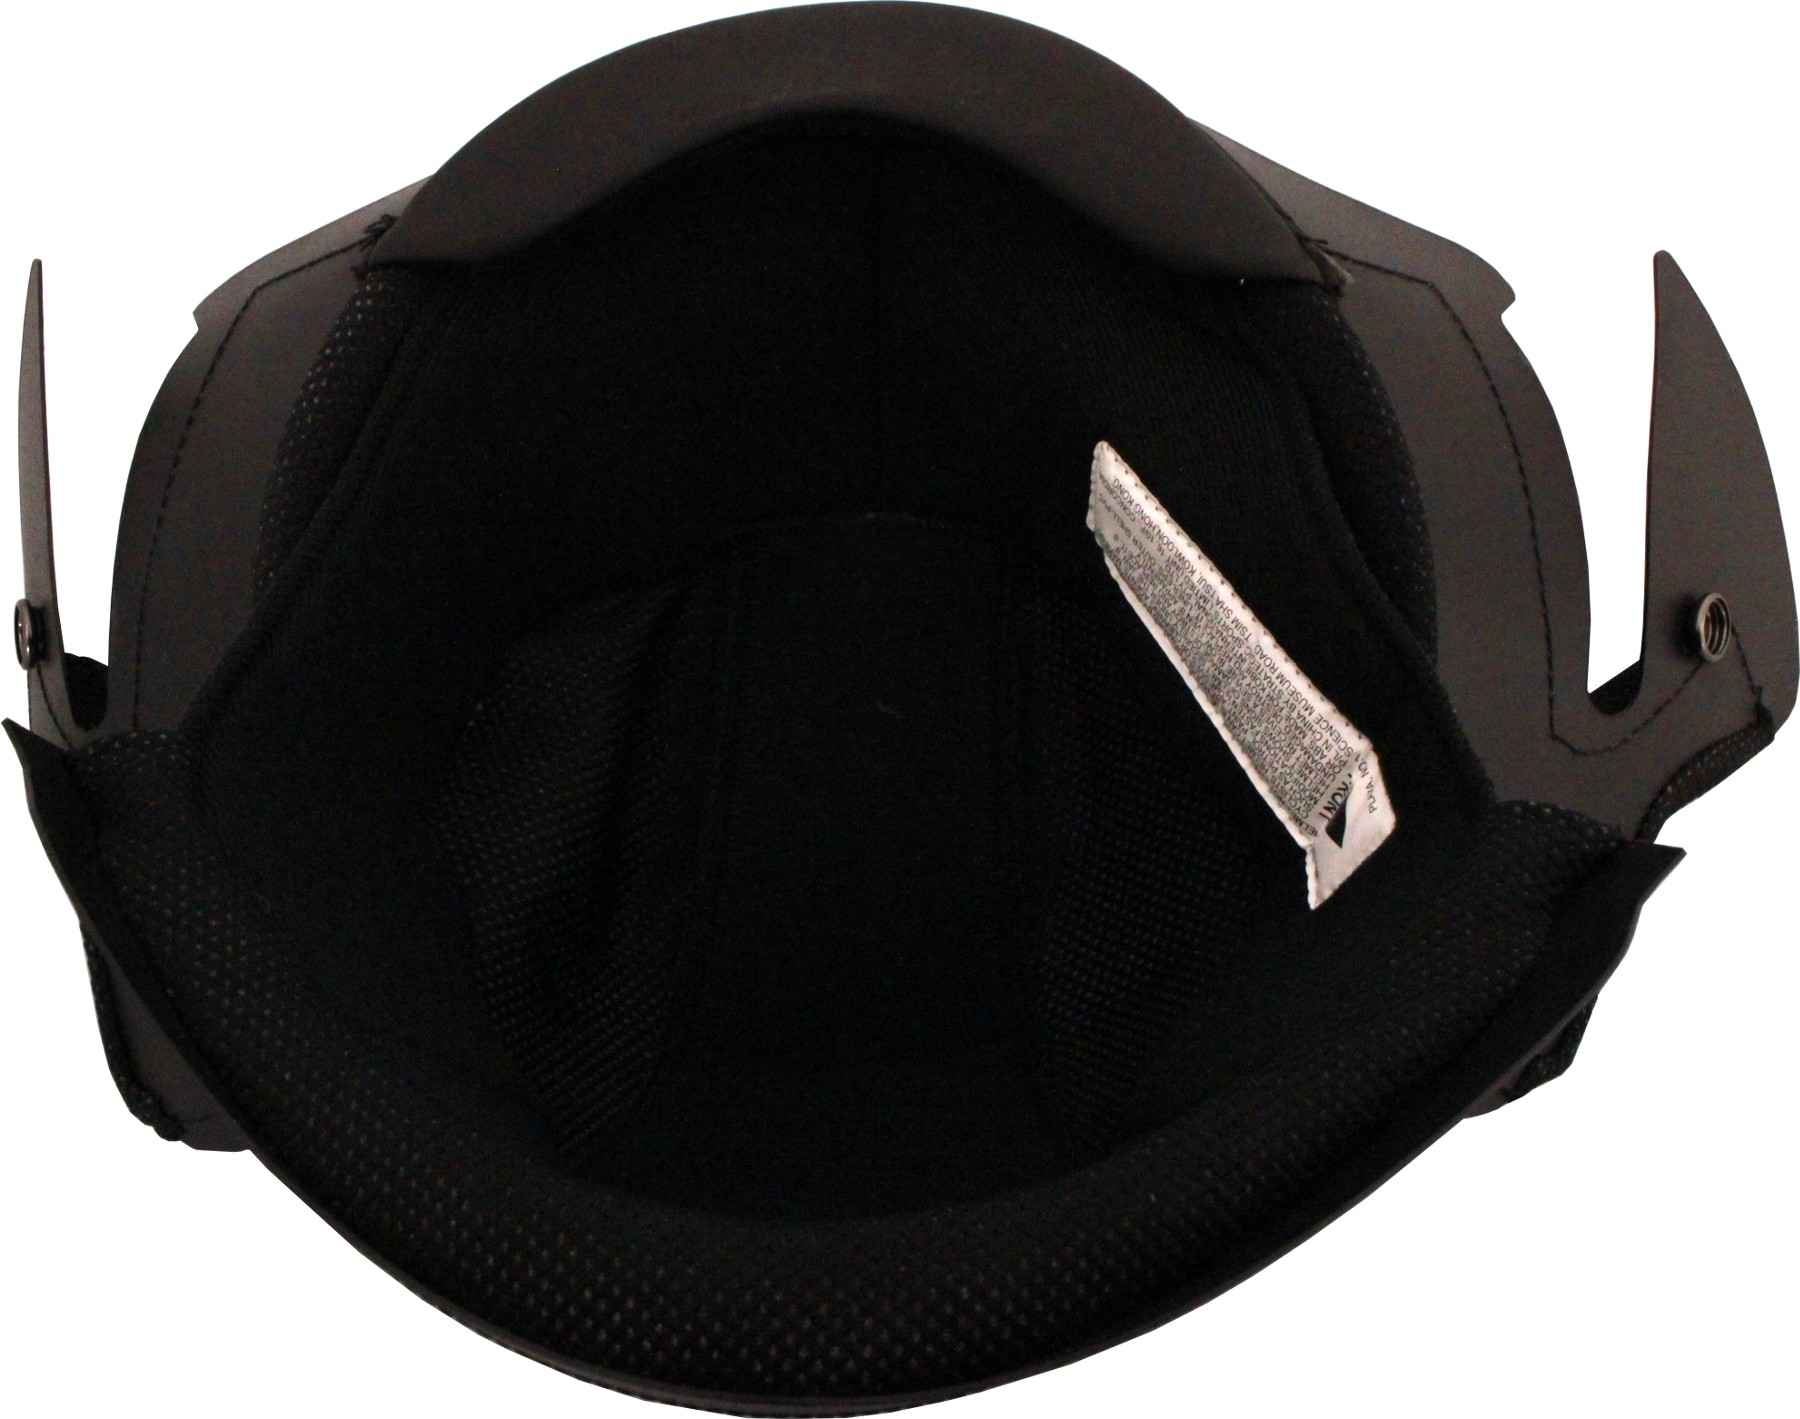 7 iDP Youth M1 Replacement Helmet Pad Kit | helmets_other_clothes